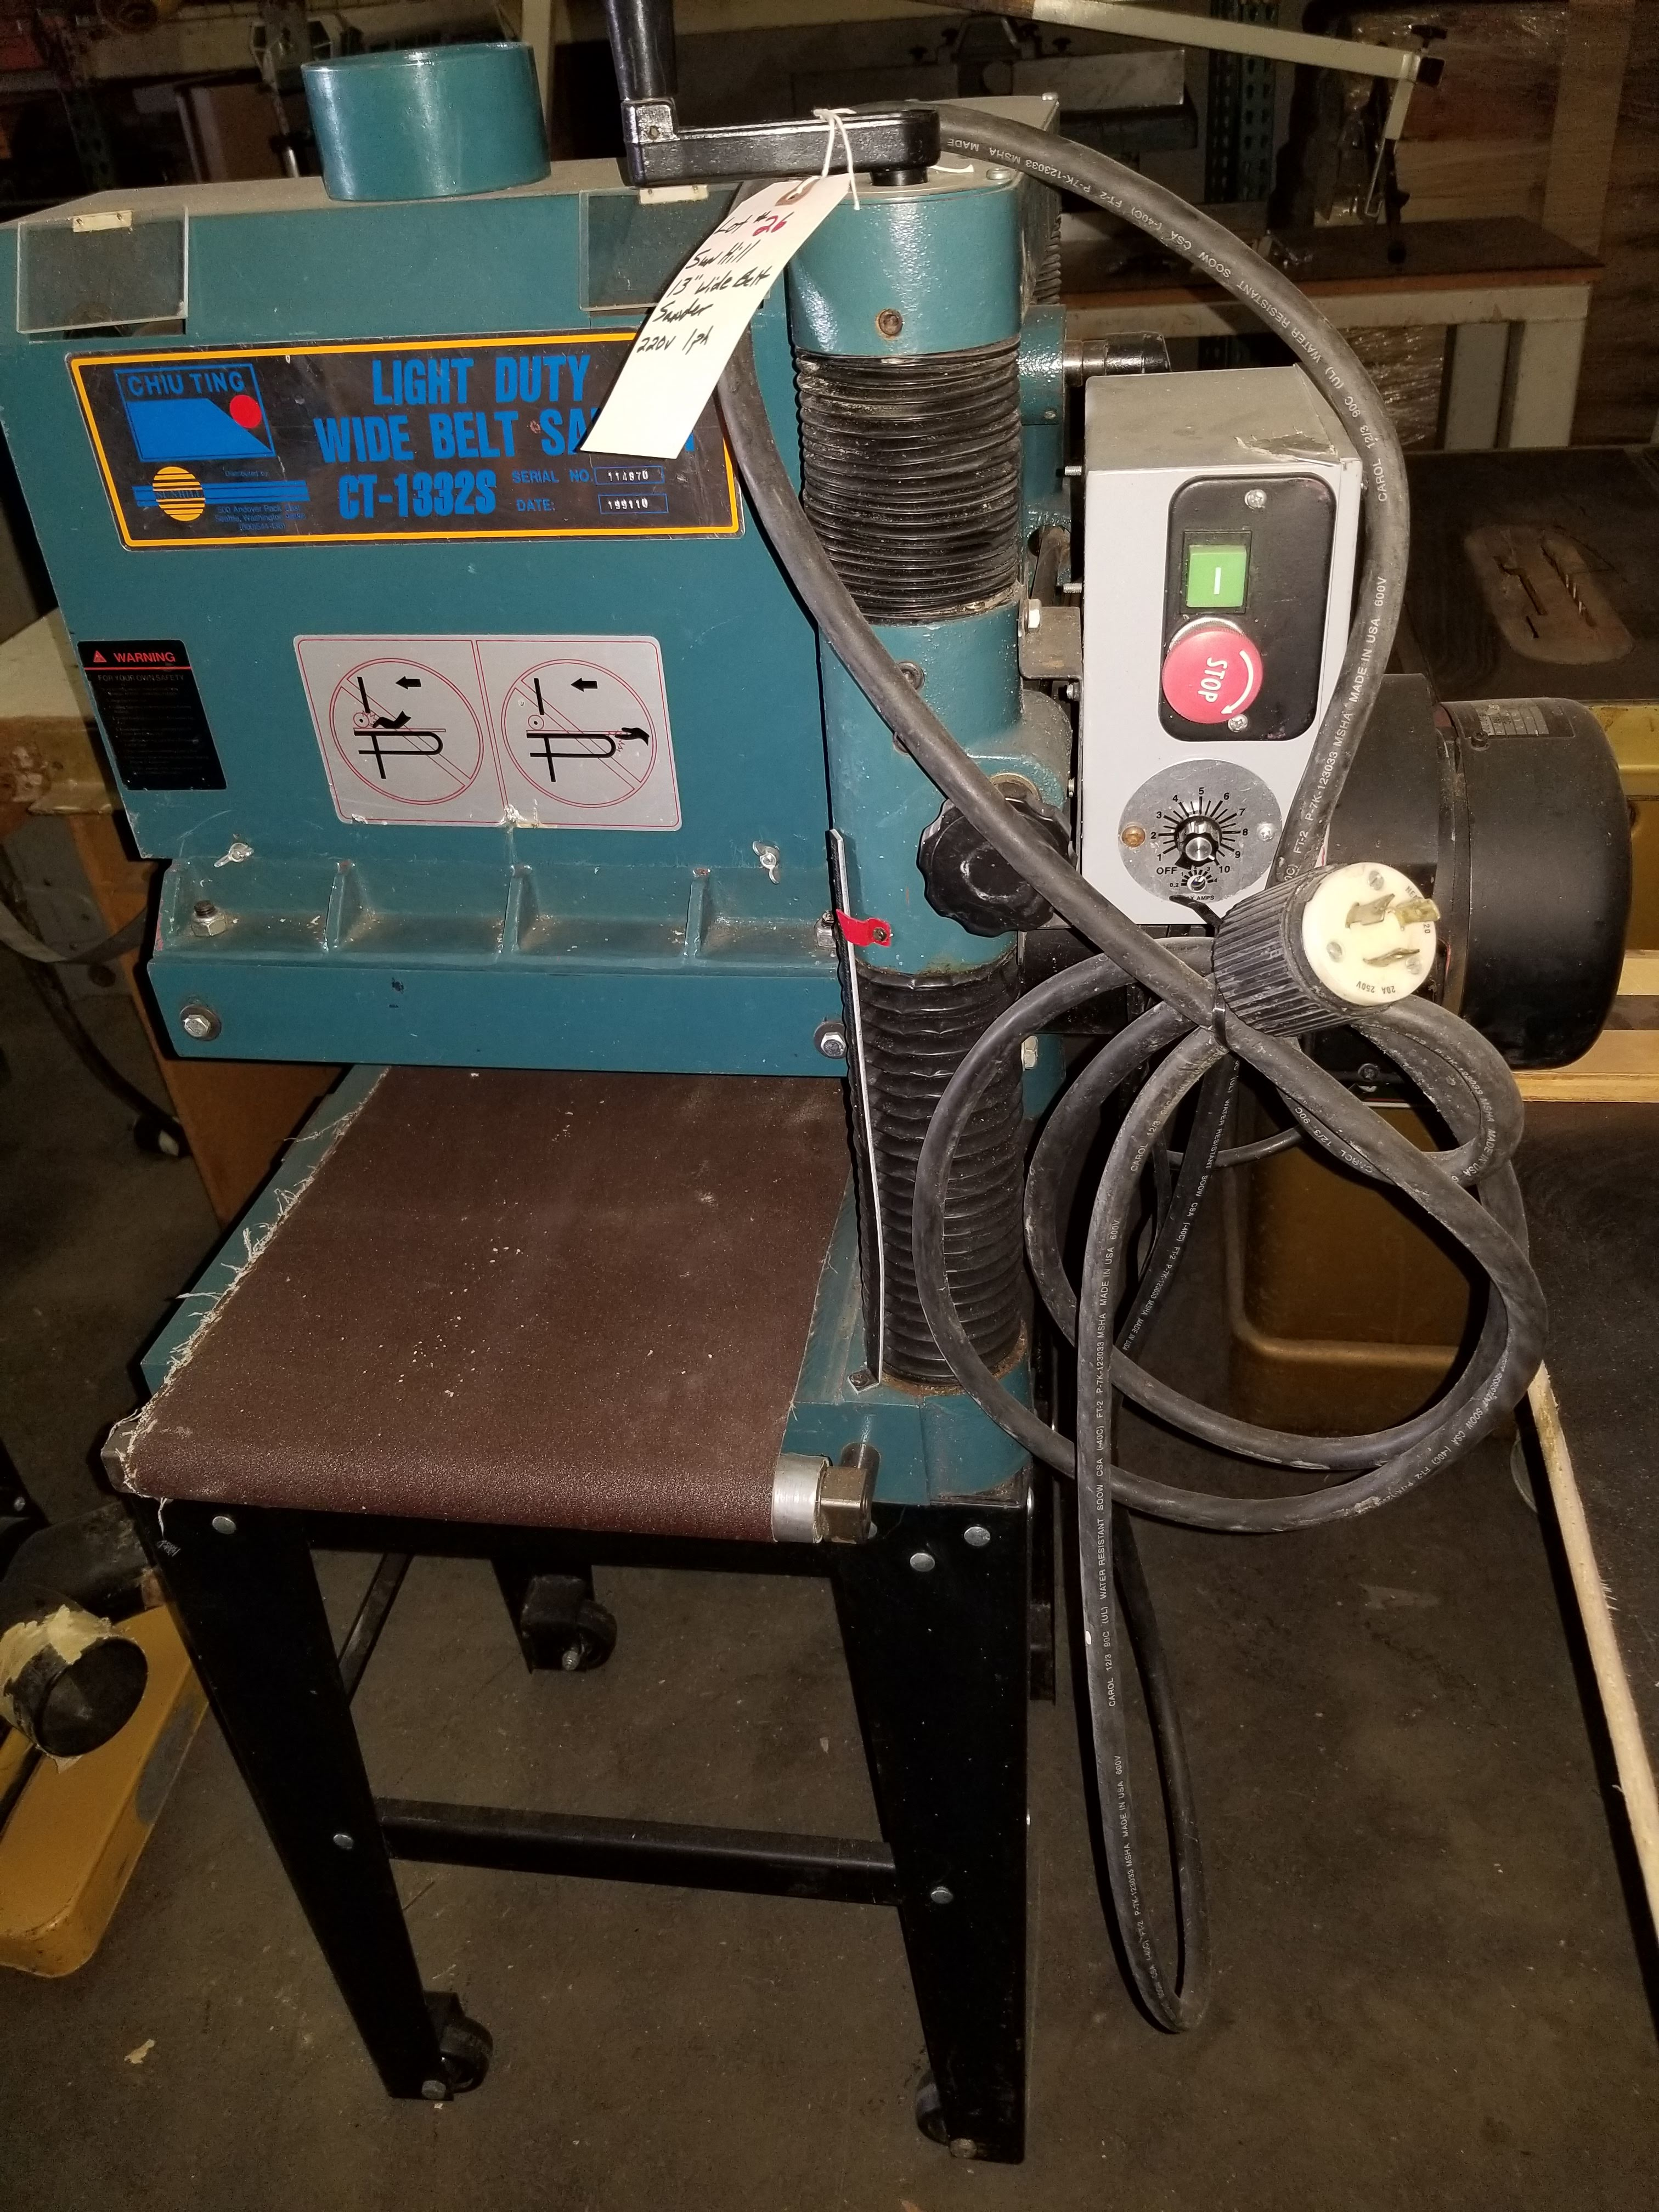 """Sunhill 13"""" Wide Belt Sander, 2Hp 220V 1ph, on stand with wheels. - Image 6 of 7"""